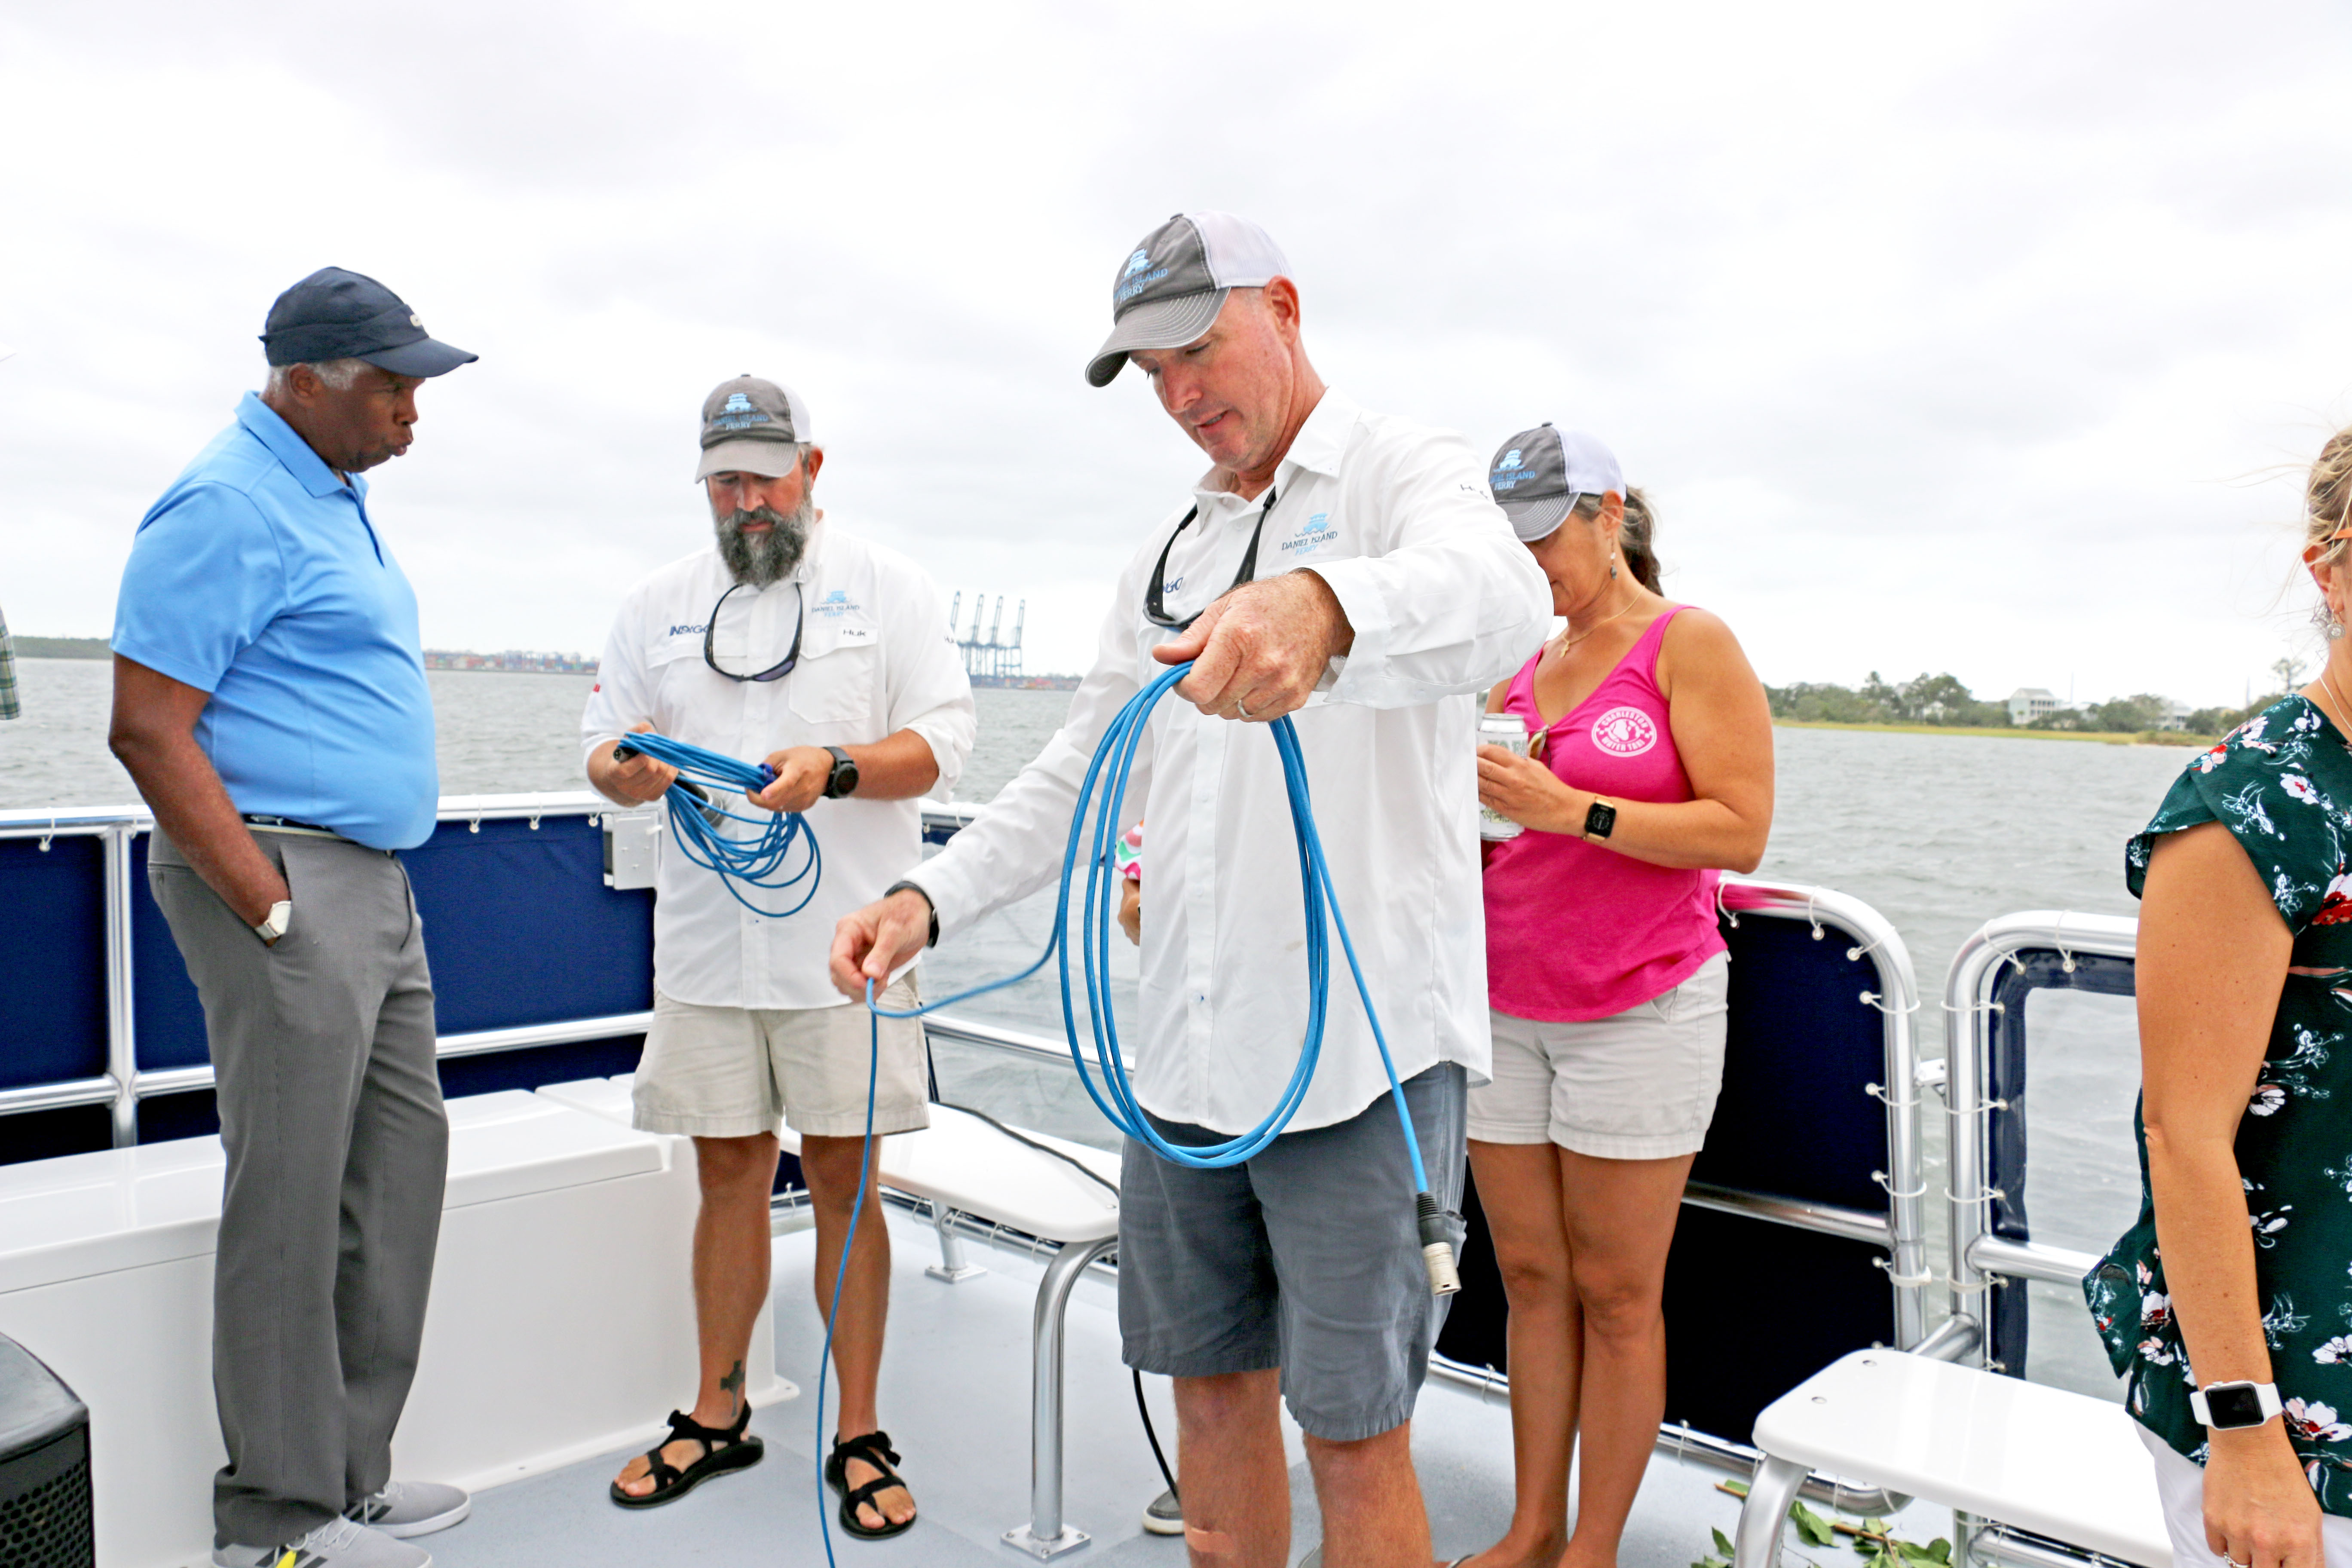 Crew members talk with interested passengers aboard Indigo following the boat's christening ceremony.